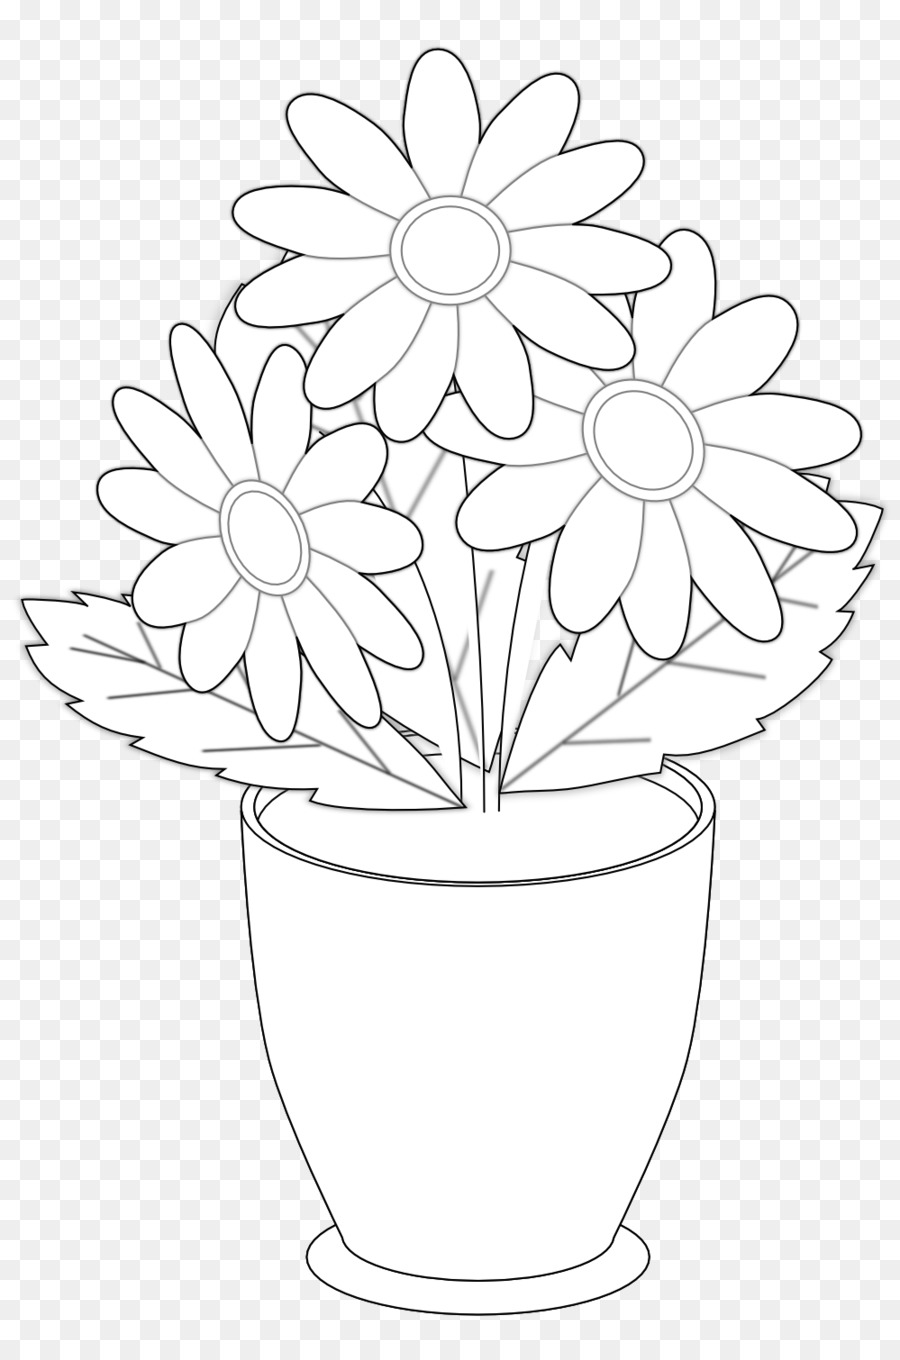 Drawing Vase Flower Black and white Clip art - Flower Vases With ...